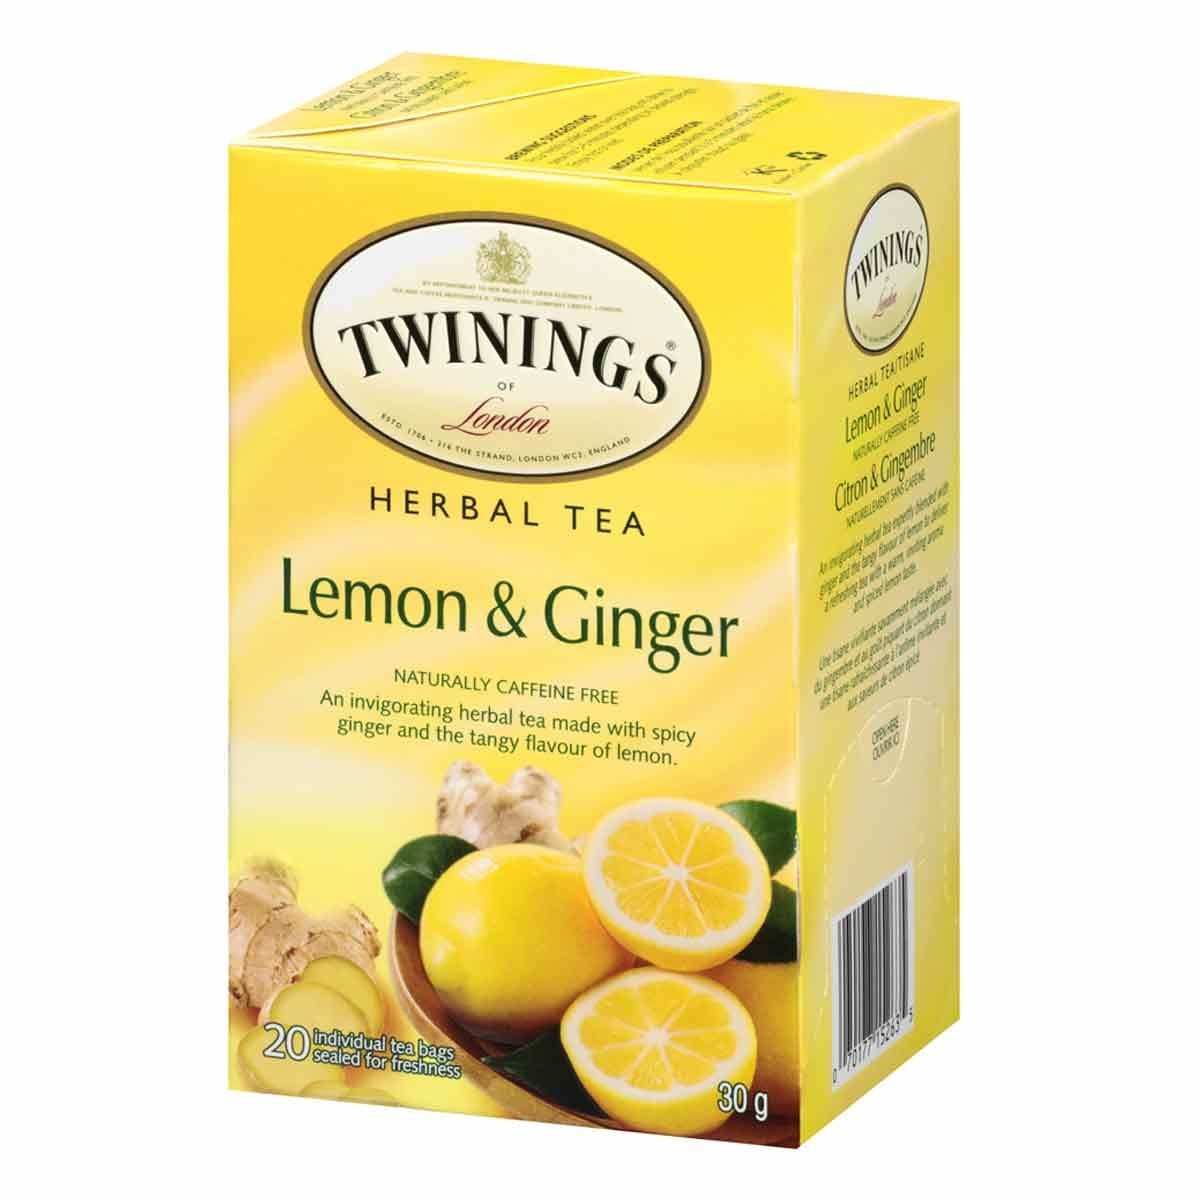 Lemon & Ginger Tea Bags From Twinings